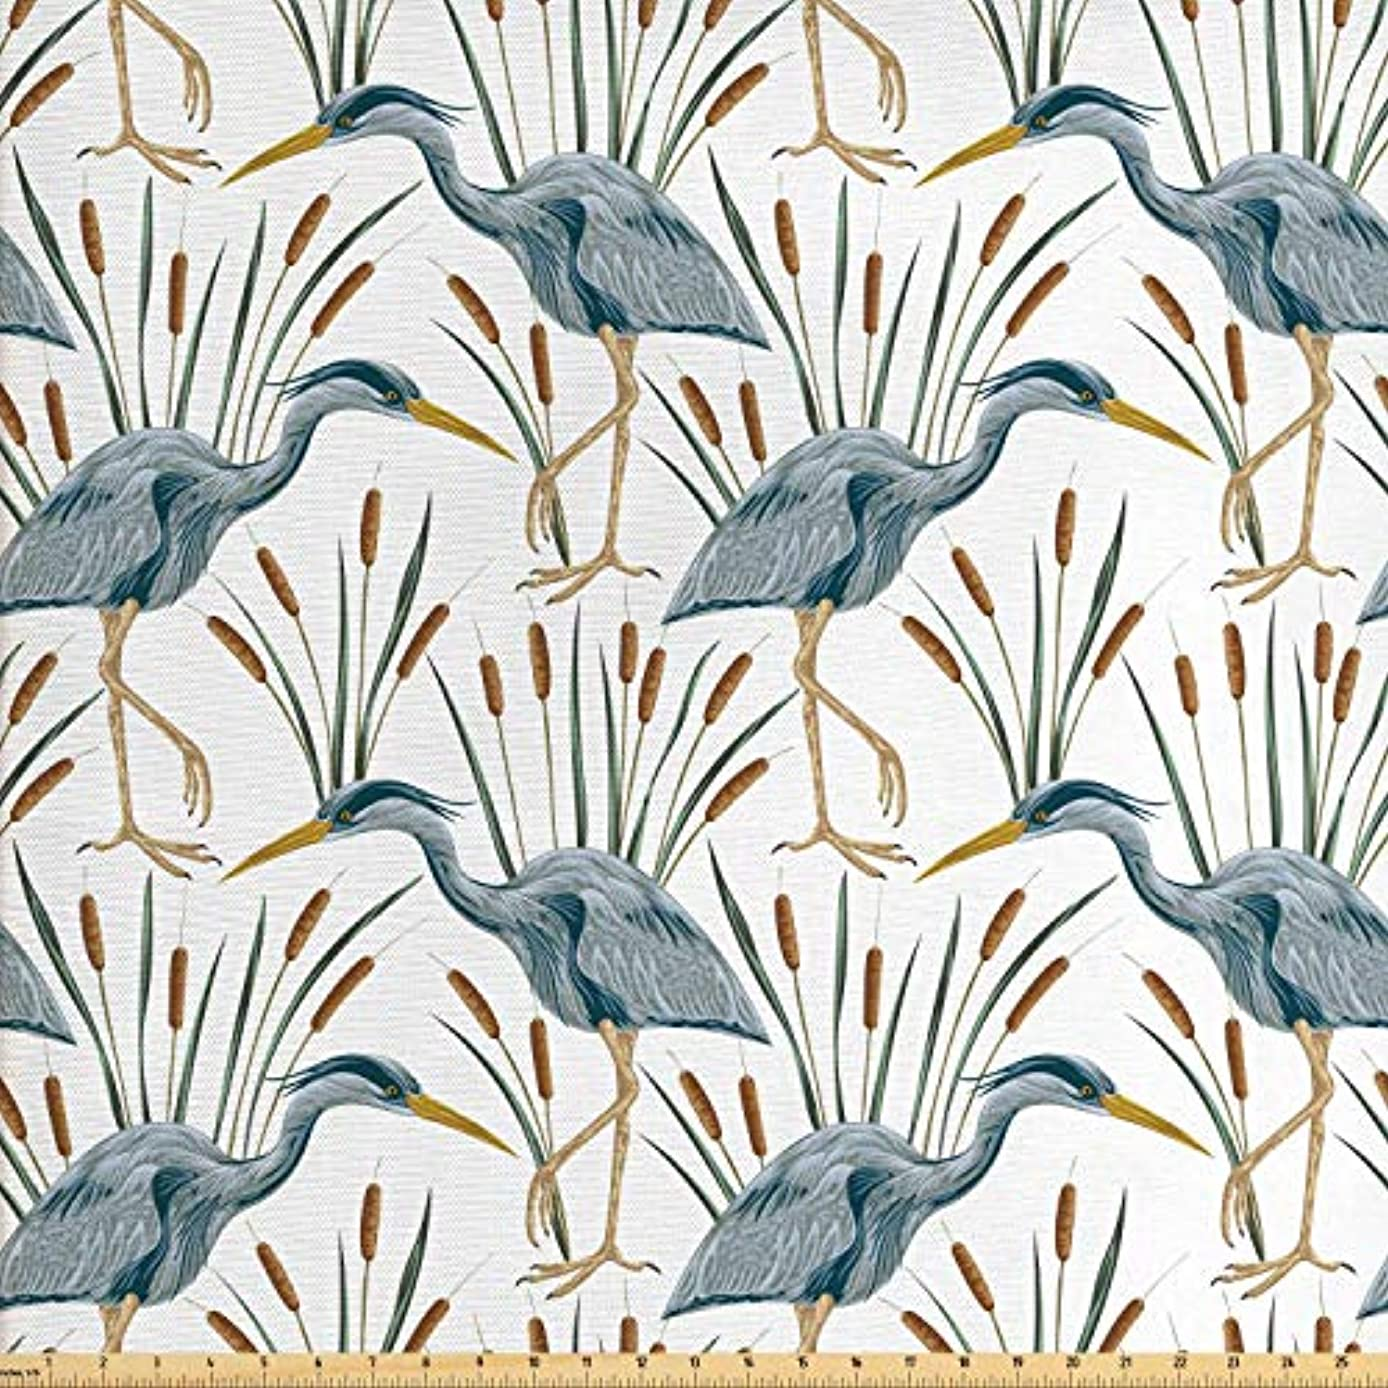 Lunarable Swamp Fabric by The Yard, Blue Grey Heron Birds and Bulrush Water Foliage Growth Wilderness Tropical Lands, Decorative Fabric for Upholstery and Home Accents, 3 Yards, Multicolor